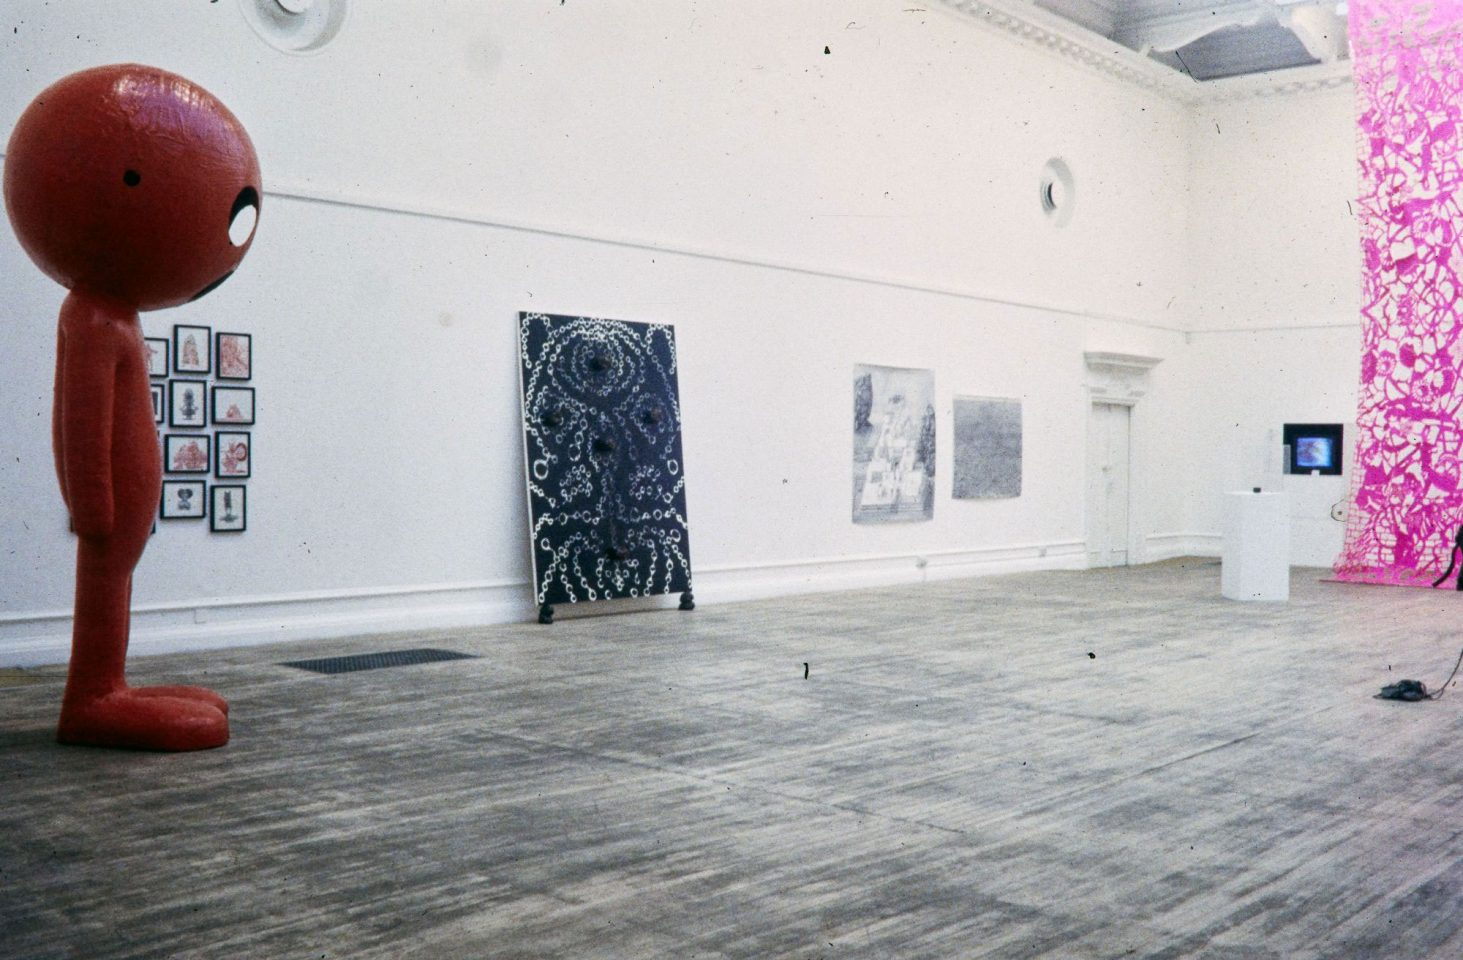 Installation view from 1996 exhibition Popoccultural featuring Simon Bill, Ellen Cantor, John Cussans & Ranu Mukherjee, Jeremy Deller, Cosey Fanni Tutti & Chris Carter, Jason Fox, Dan Graham, Paul McCarthy, Paul Noble, Chris Ofili, Simon Periton, Jeffrey Vallance. Curated by Cabinet Gallery.